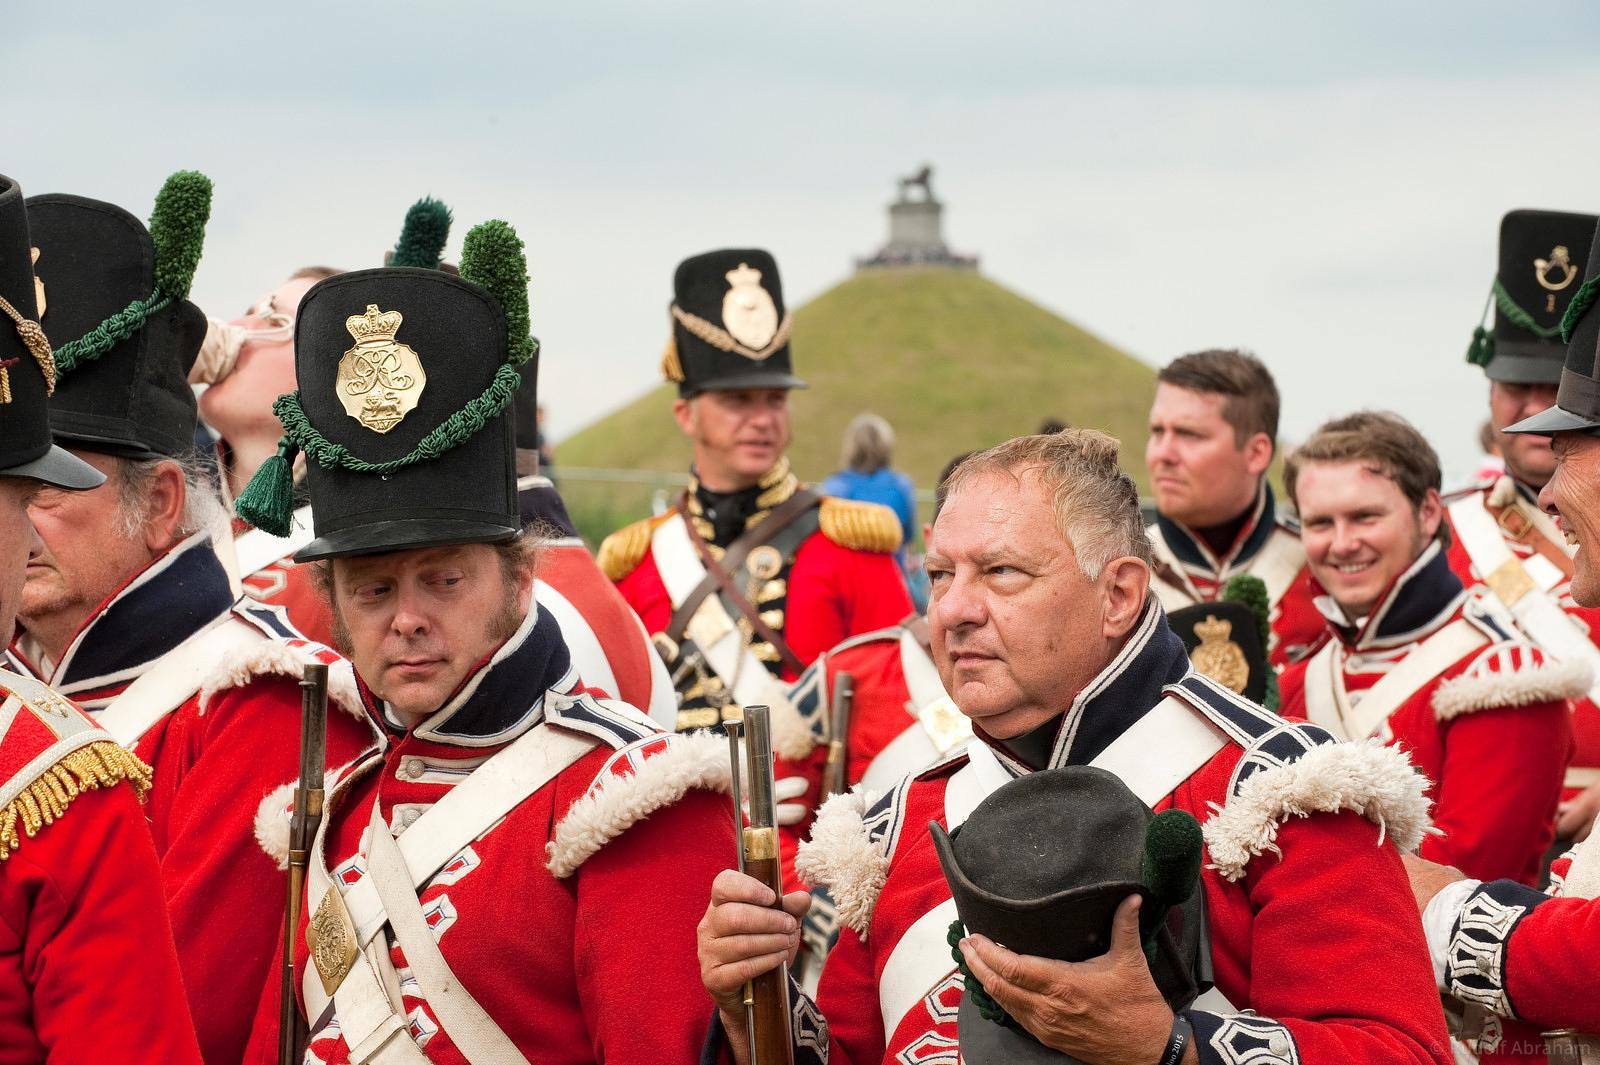 Waterloo 200th reenactment, Belgium